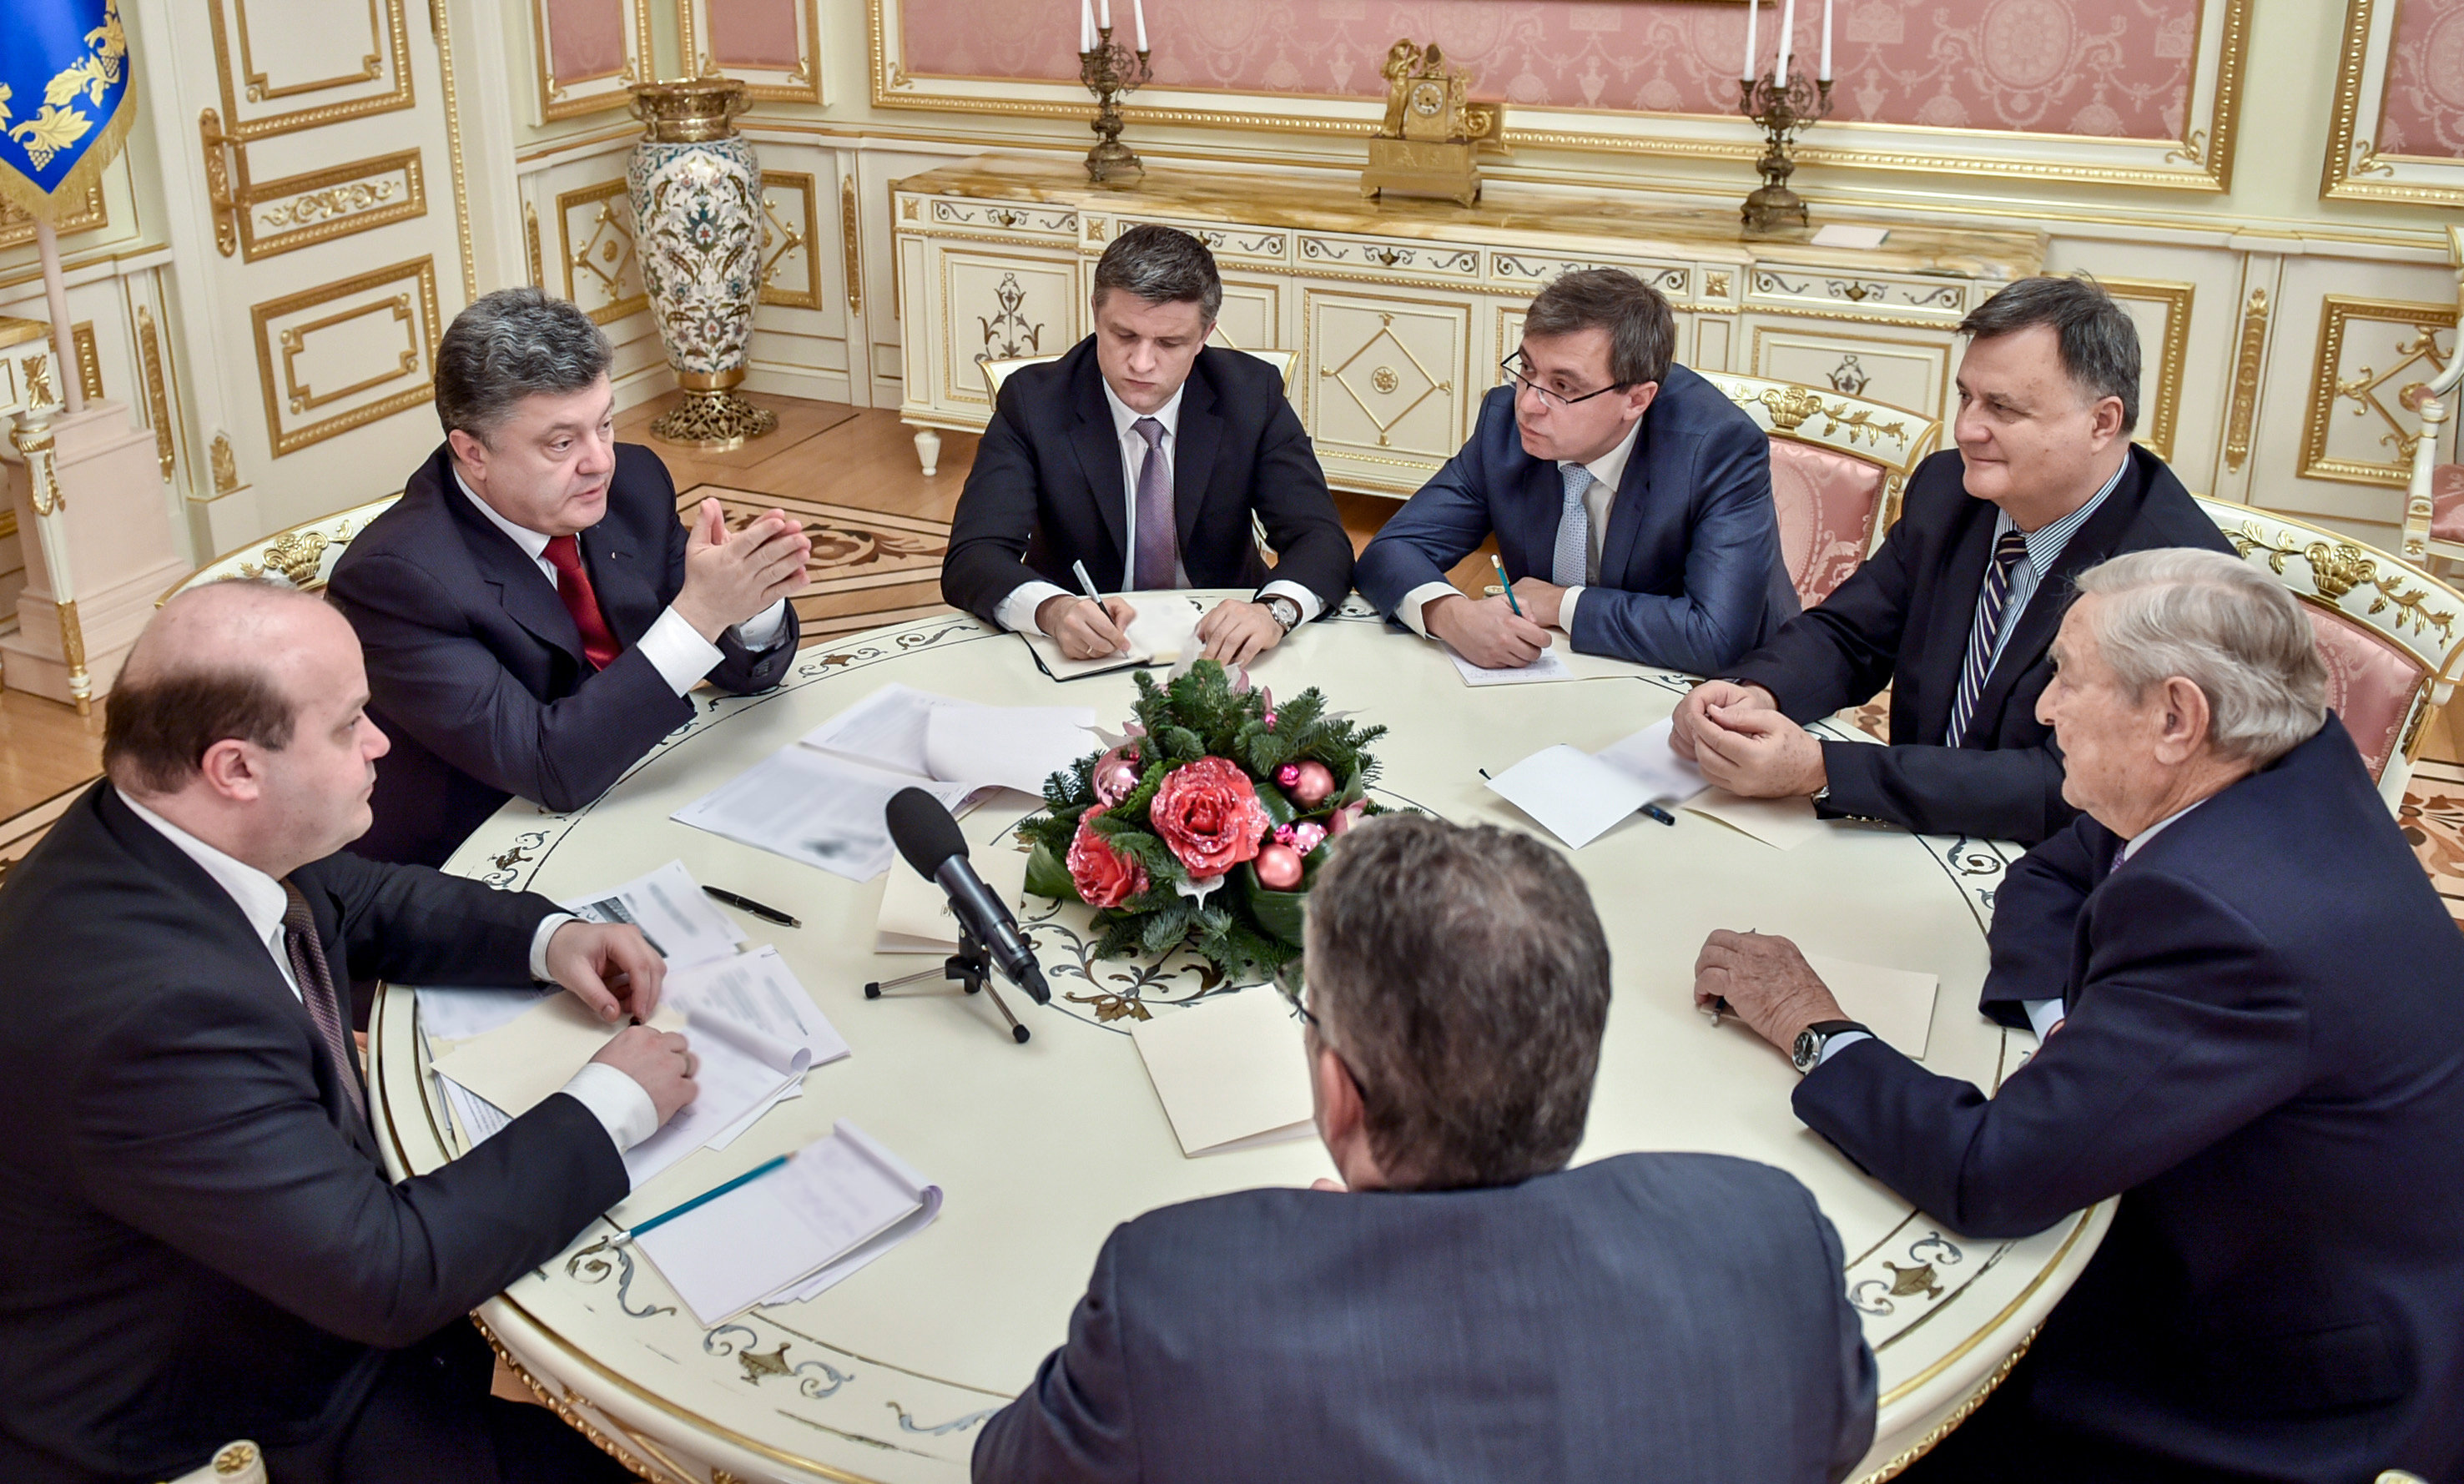 Ukrainian President Petro Poroshenko (second left) and George Soros (right), founder and chairman of the Open Society Foundations, during a meeting in Kiev